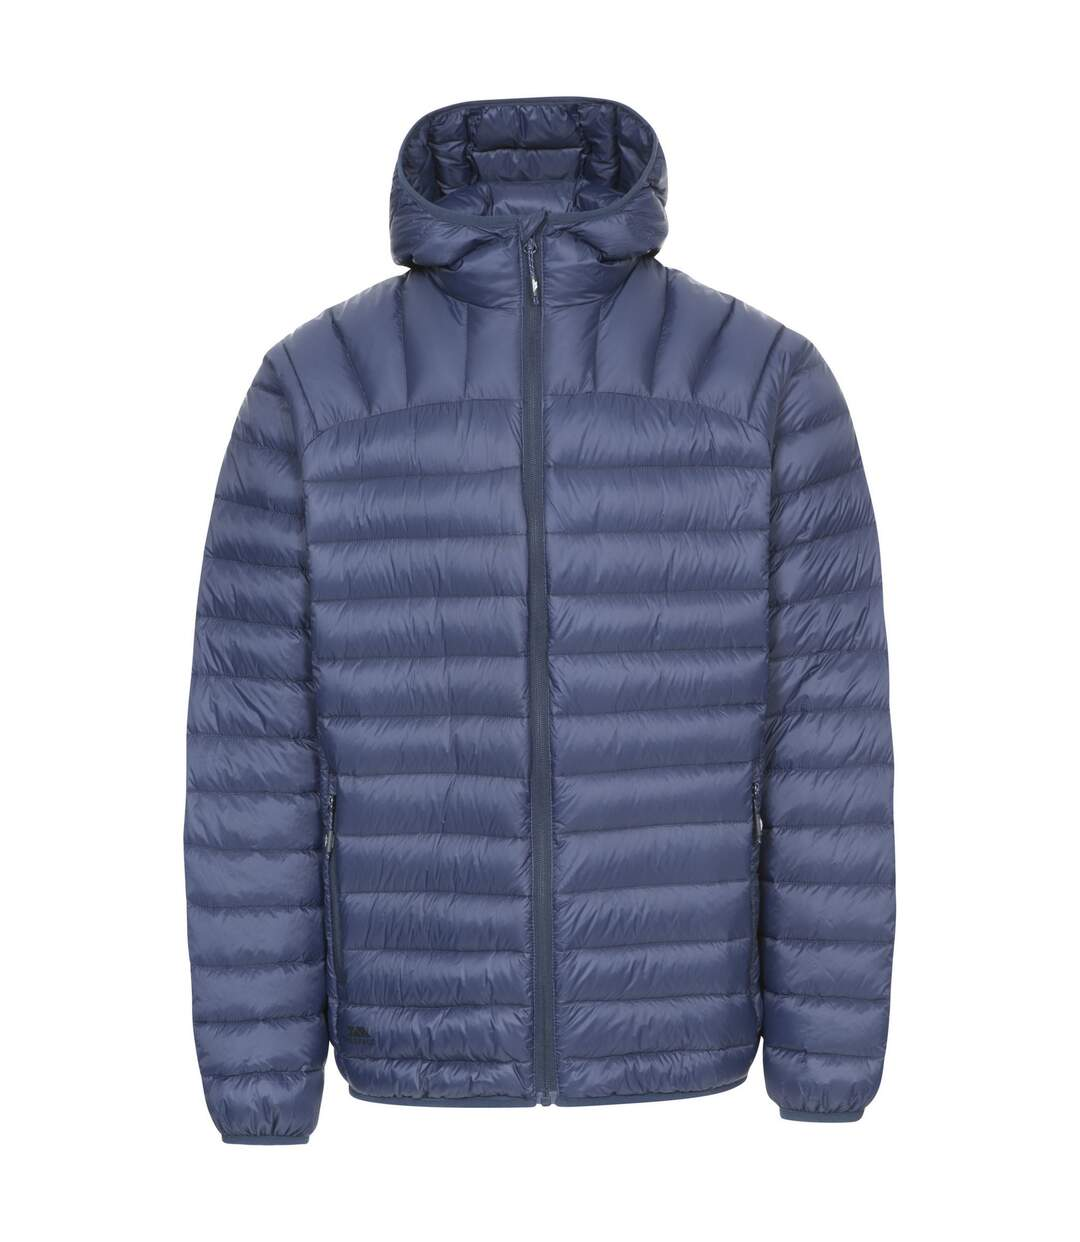 Trespass Mens Romano Down Jacket (Navy) - UTTP3776